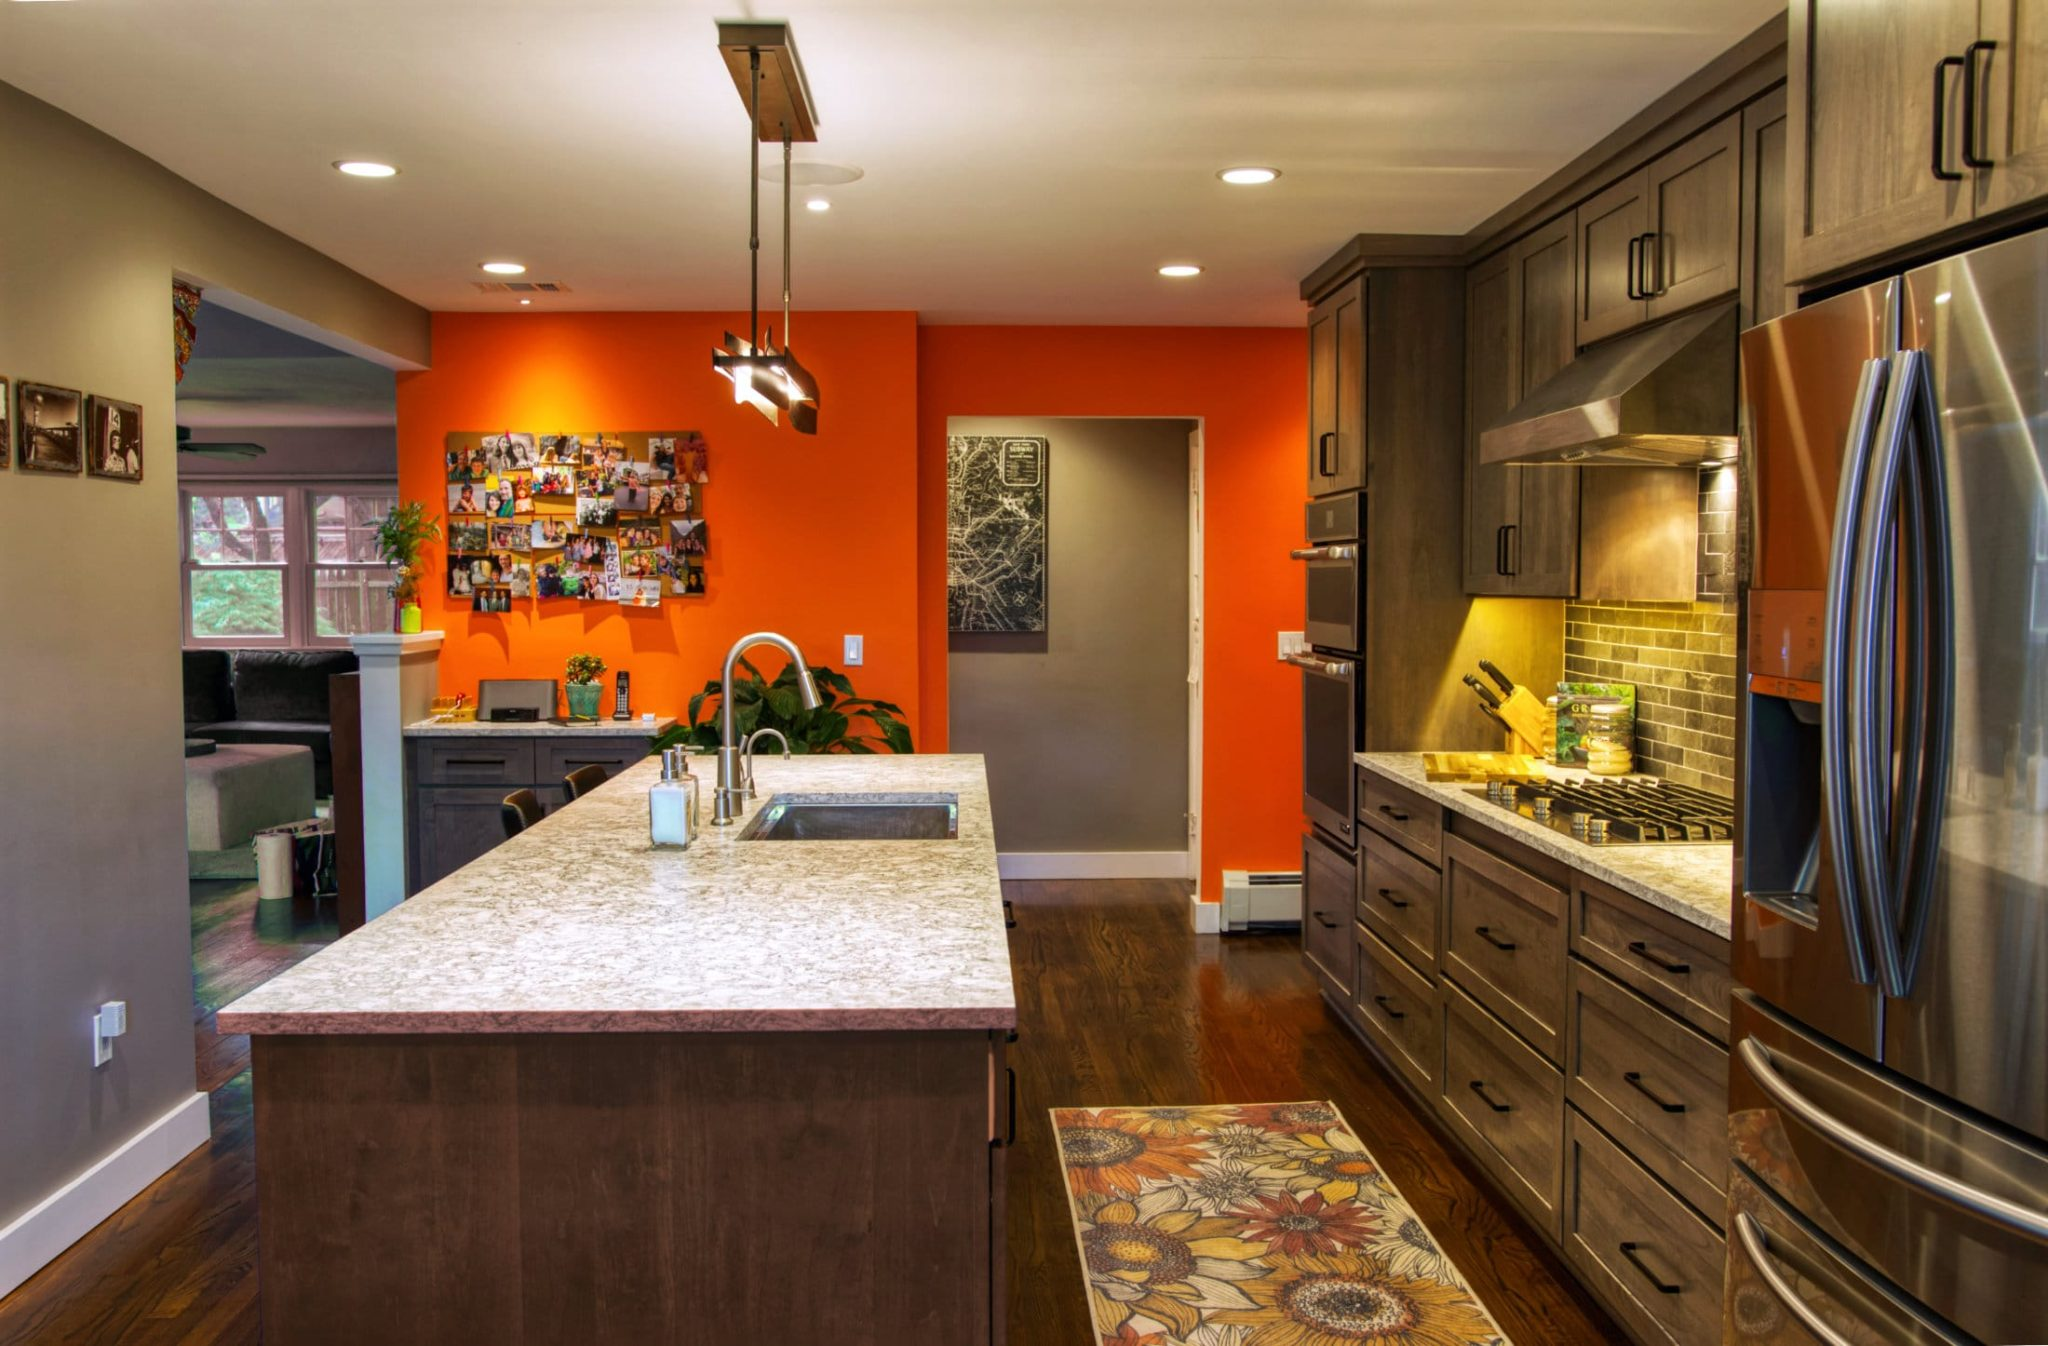 Kitchen Island with sink, and main run of cabinets, built in counter cooktop, refrigerator, exhaust hood